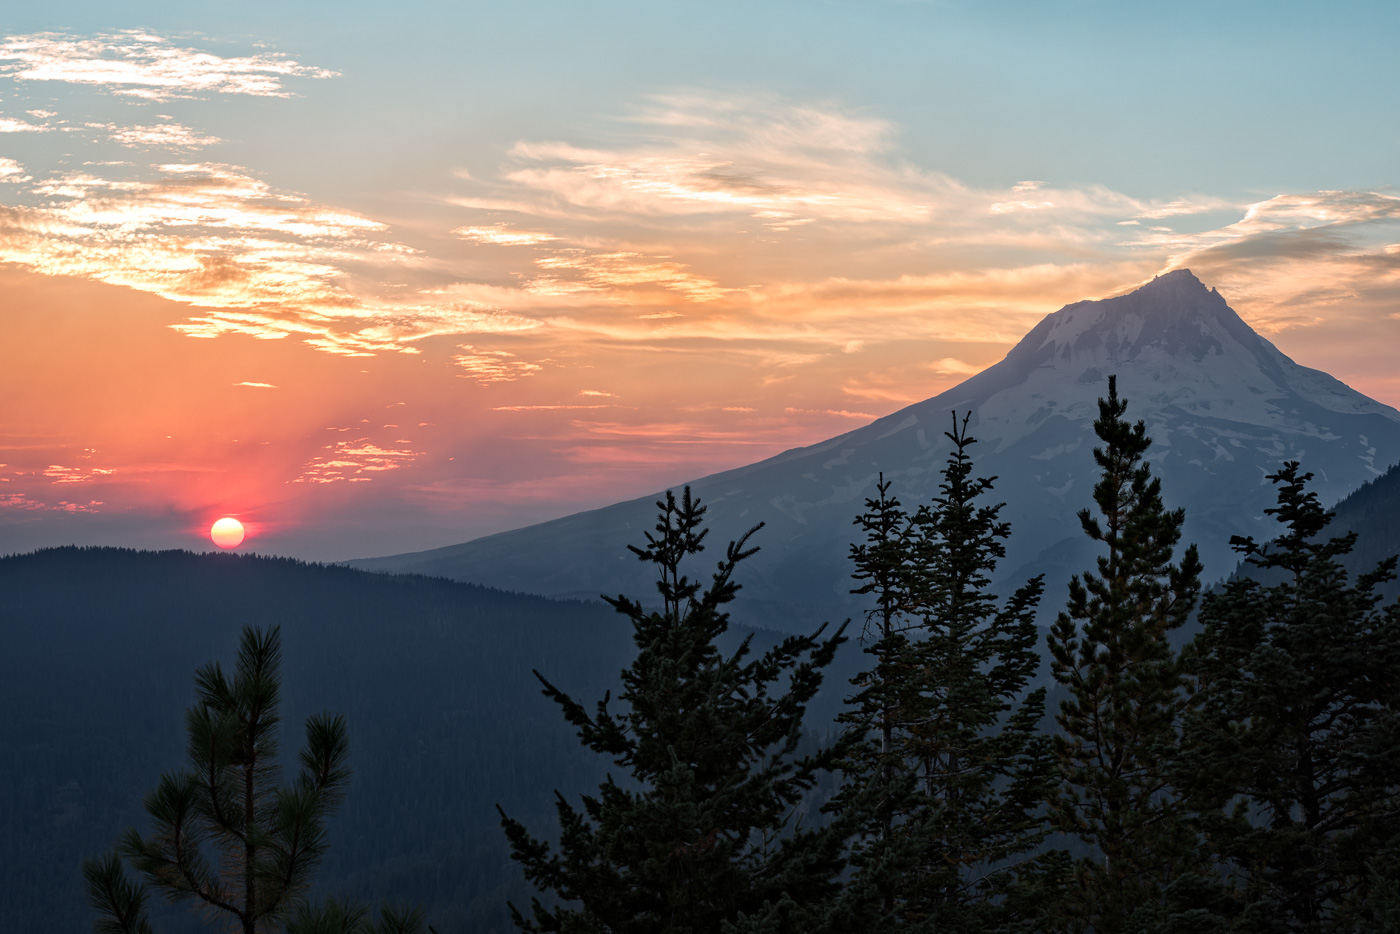 Smoke Filled Sunset over Mt. Hood.   Technical Details:  Nikon D810, Nikkor 70-200VRII @ F16 For 1/6 sec. @ ISO 64